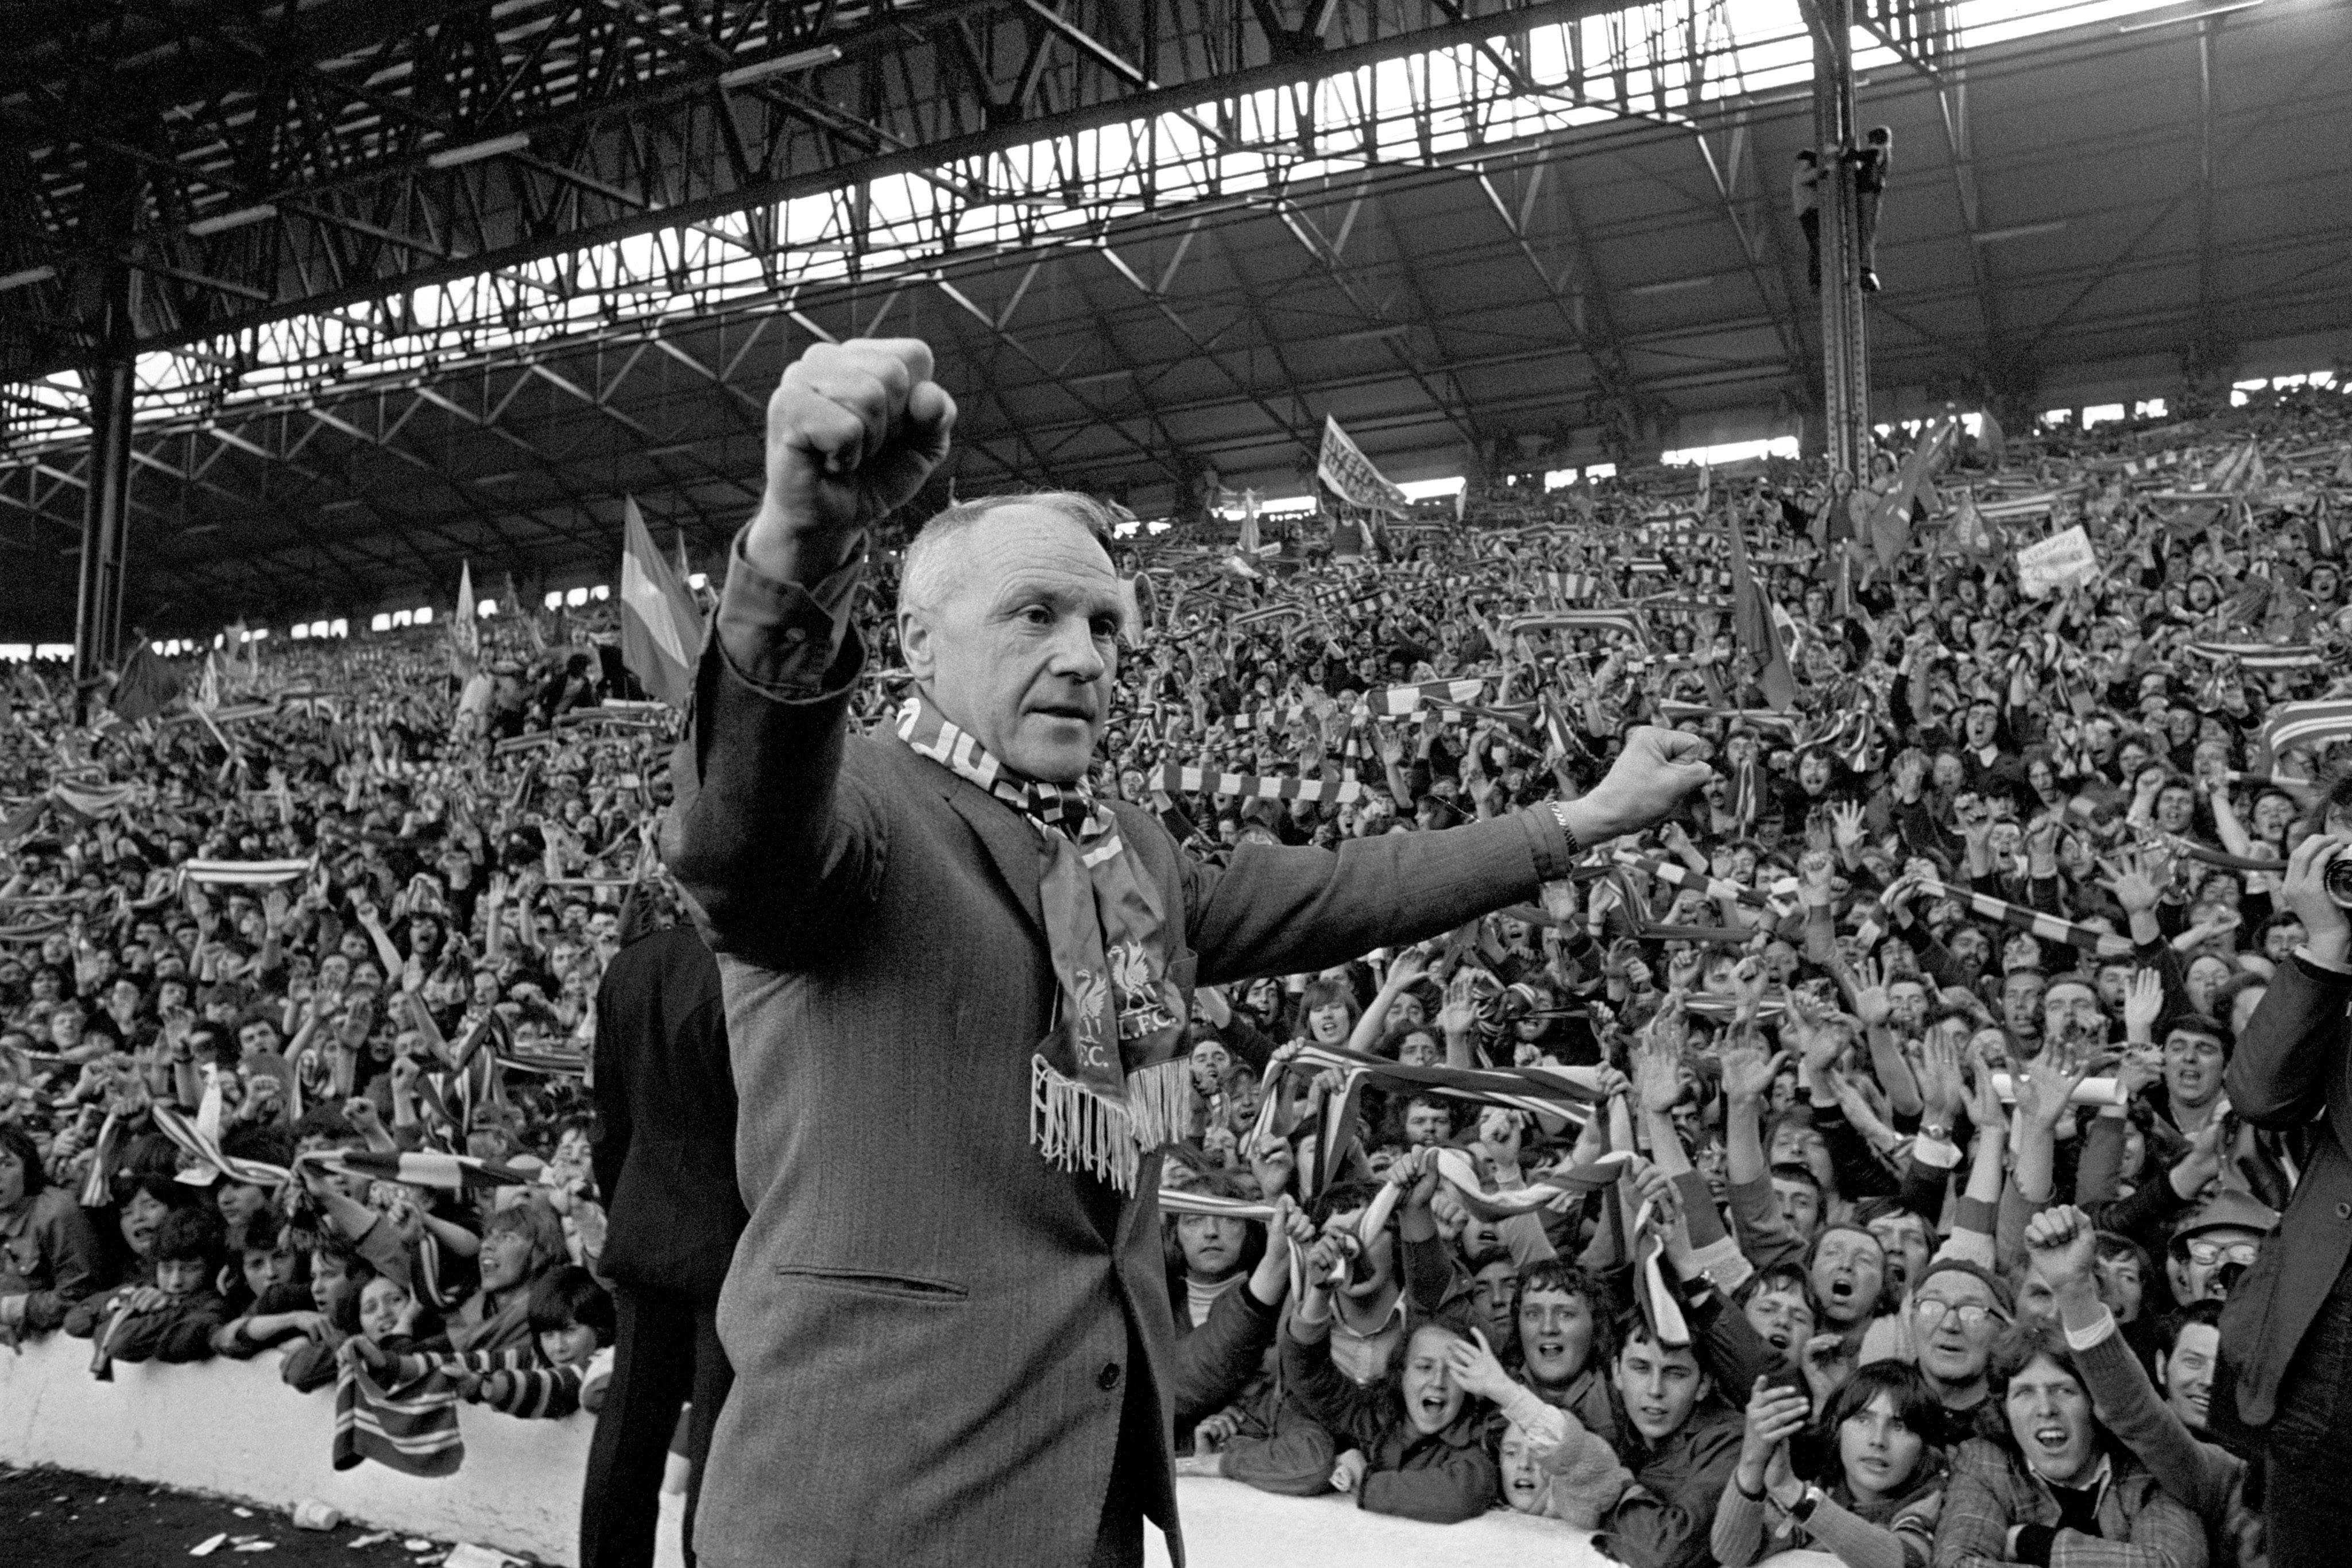 Liverpool's legendary Bill Shankly.  Turning towards the Kop end of Anfield, Shankly gets an ovation from the fans who idolised him when Liverpool became League champions.